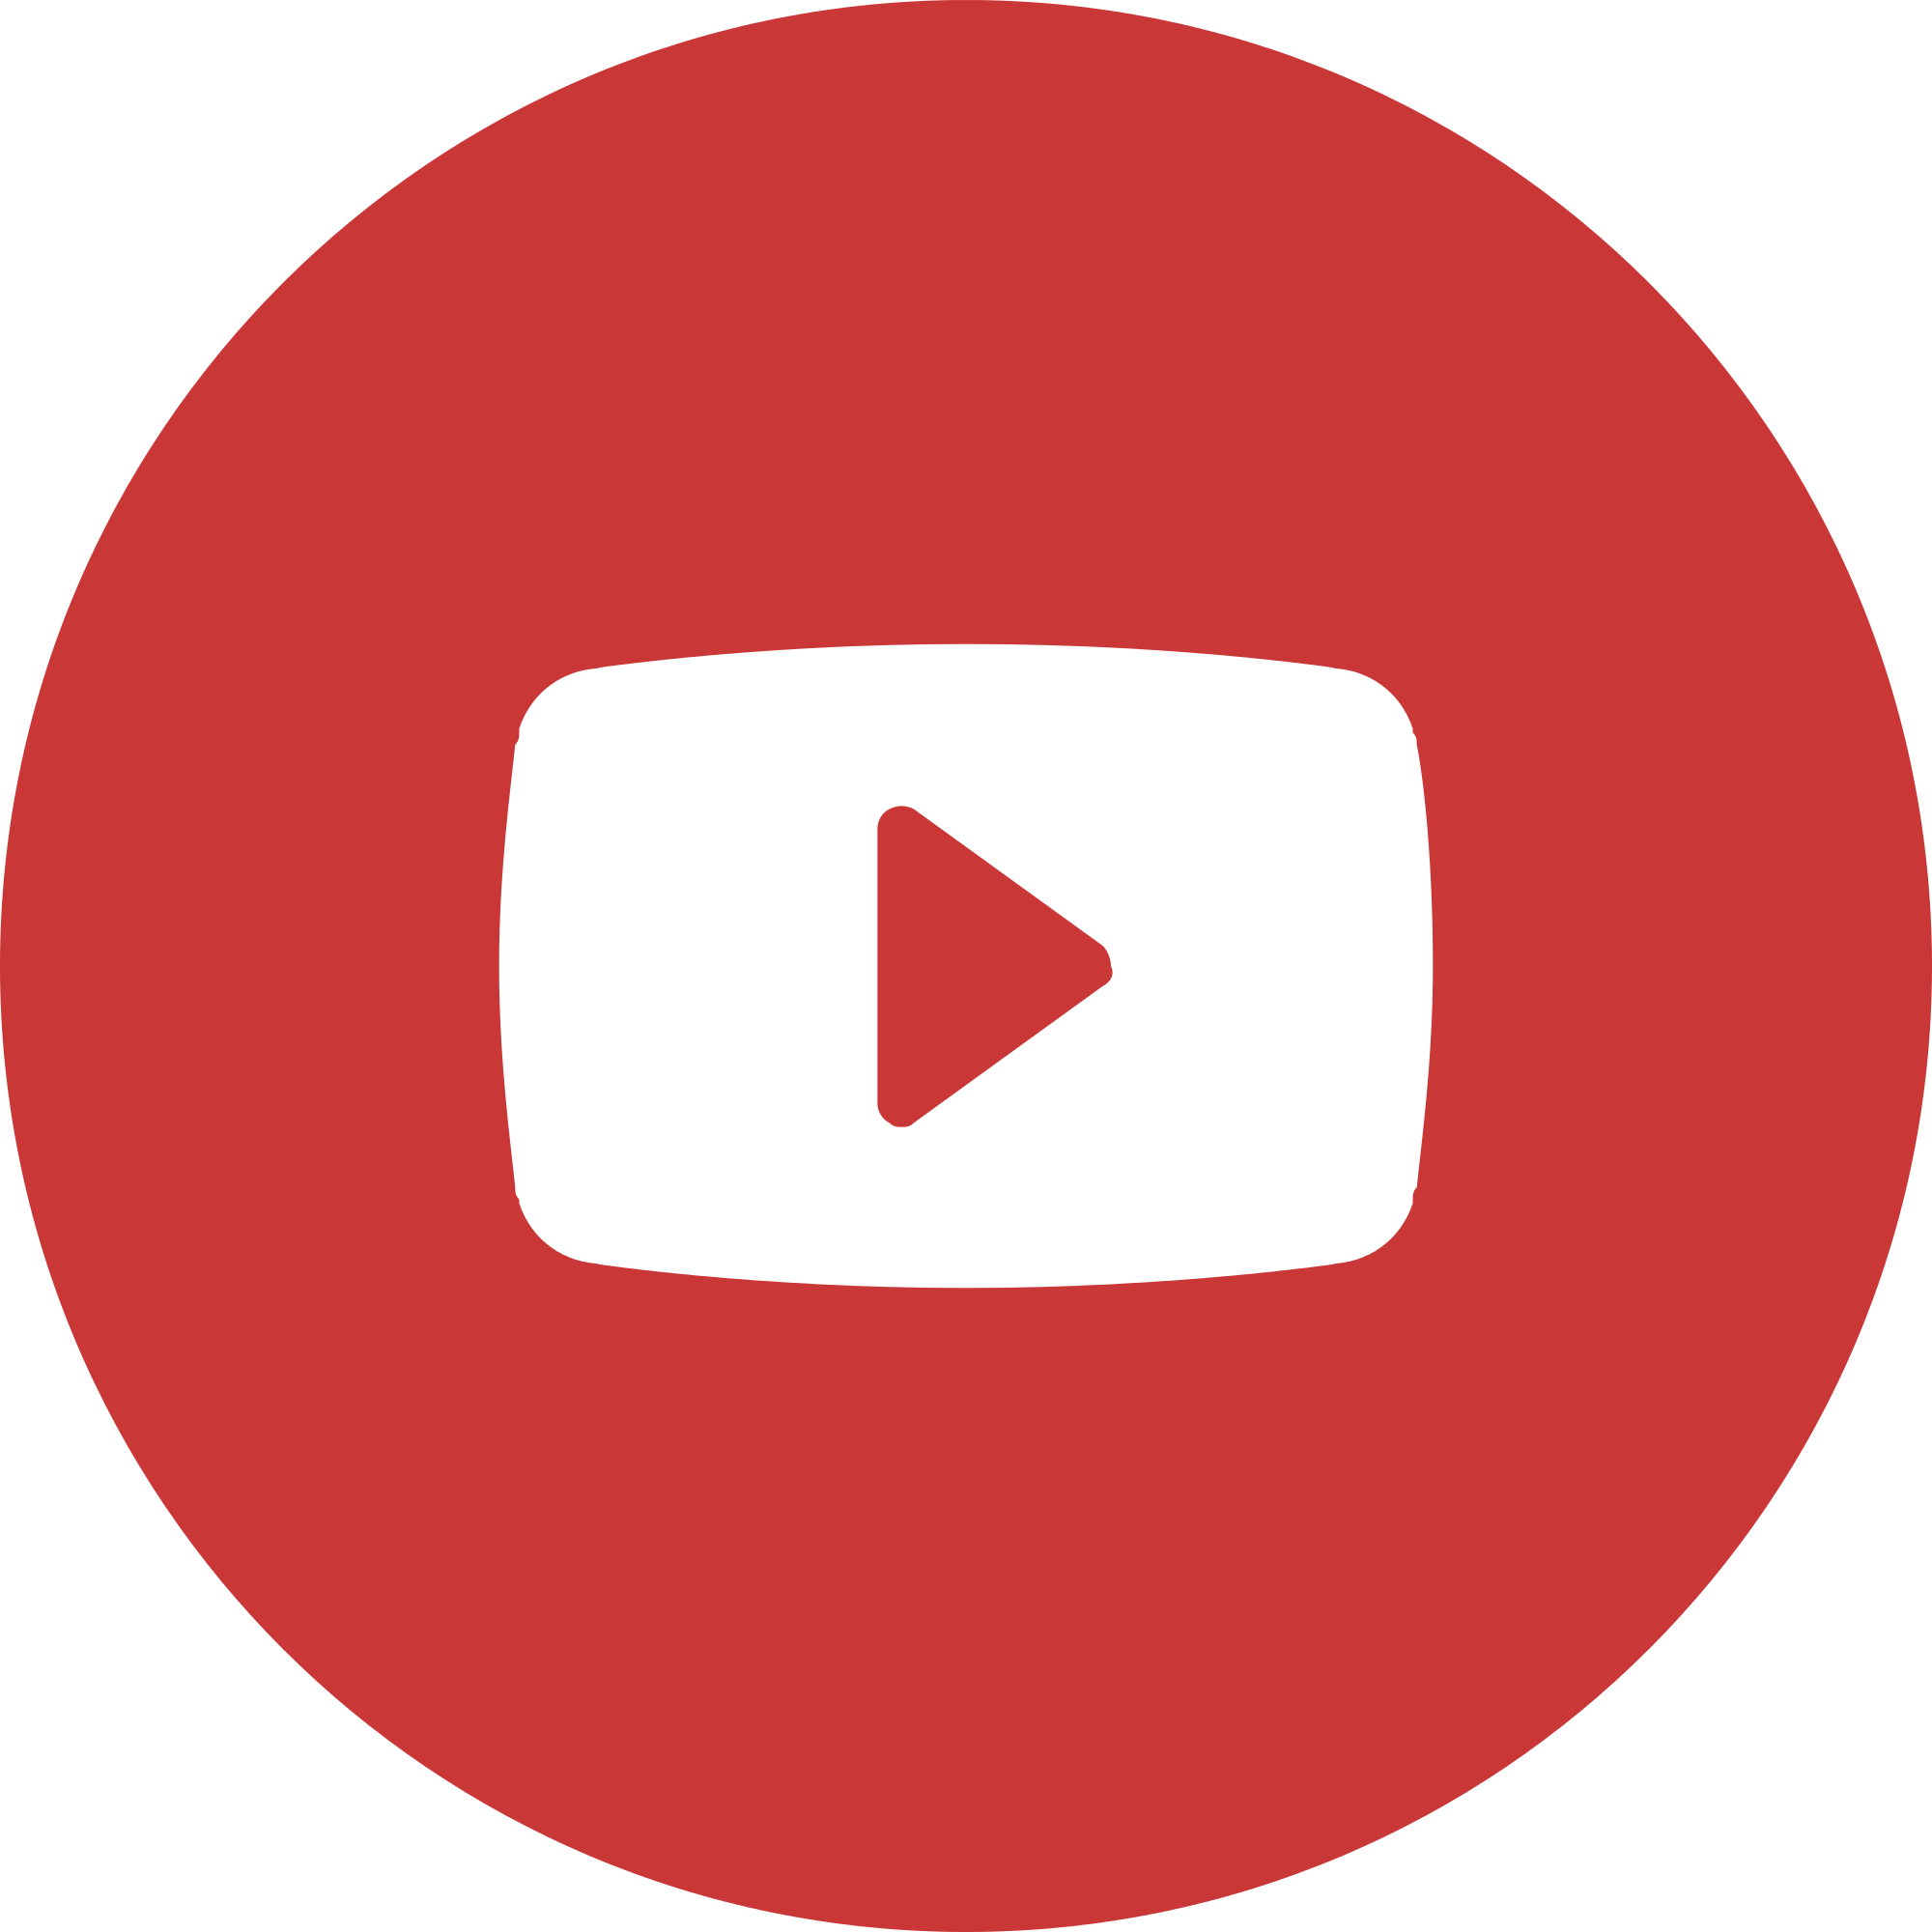 fresh icon template. Youtube clipart maker